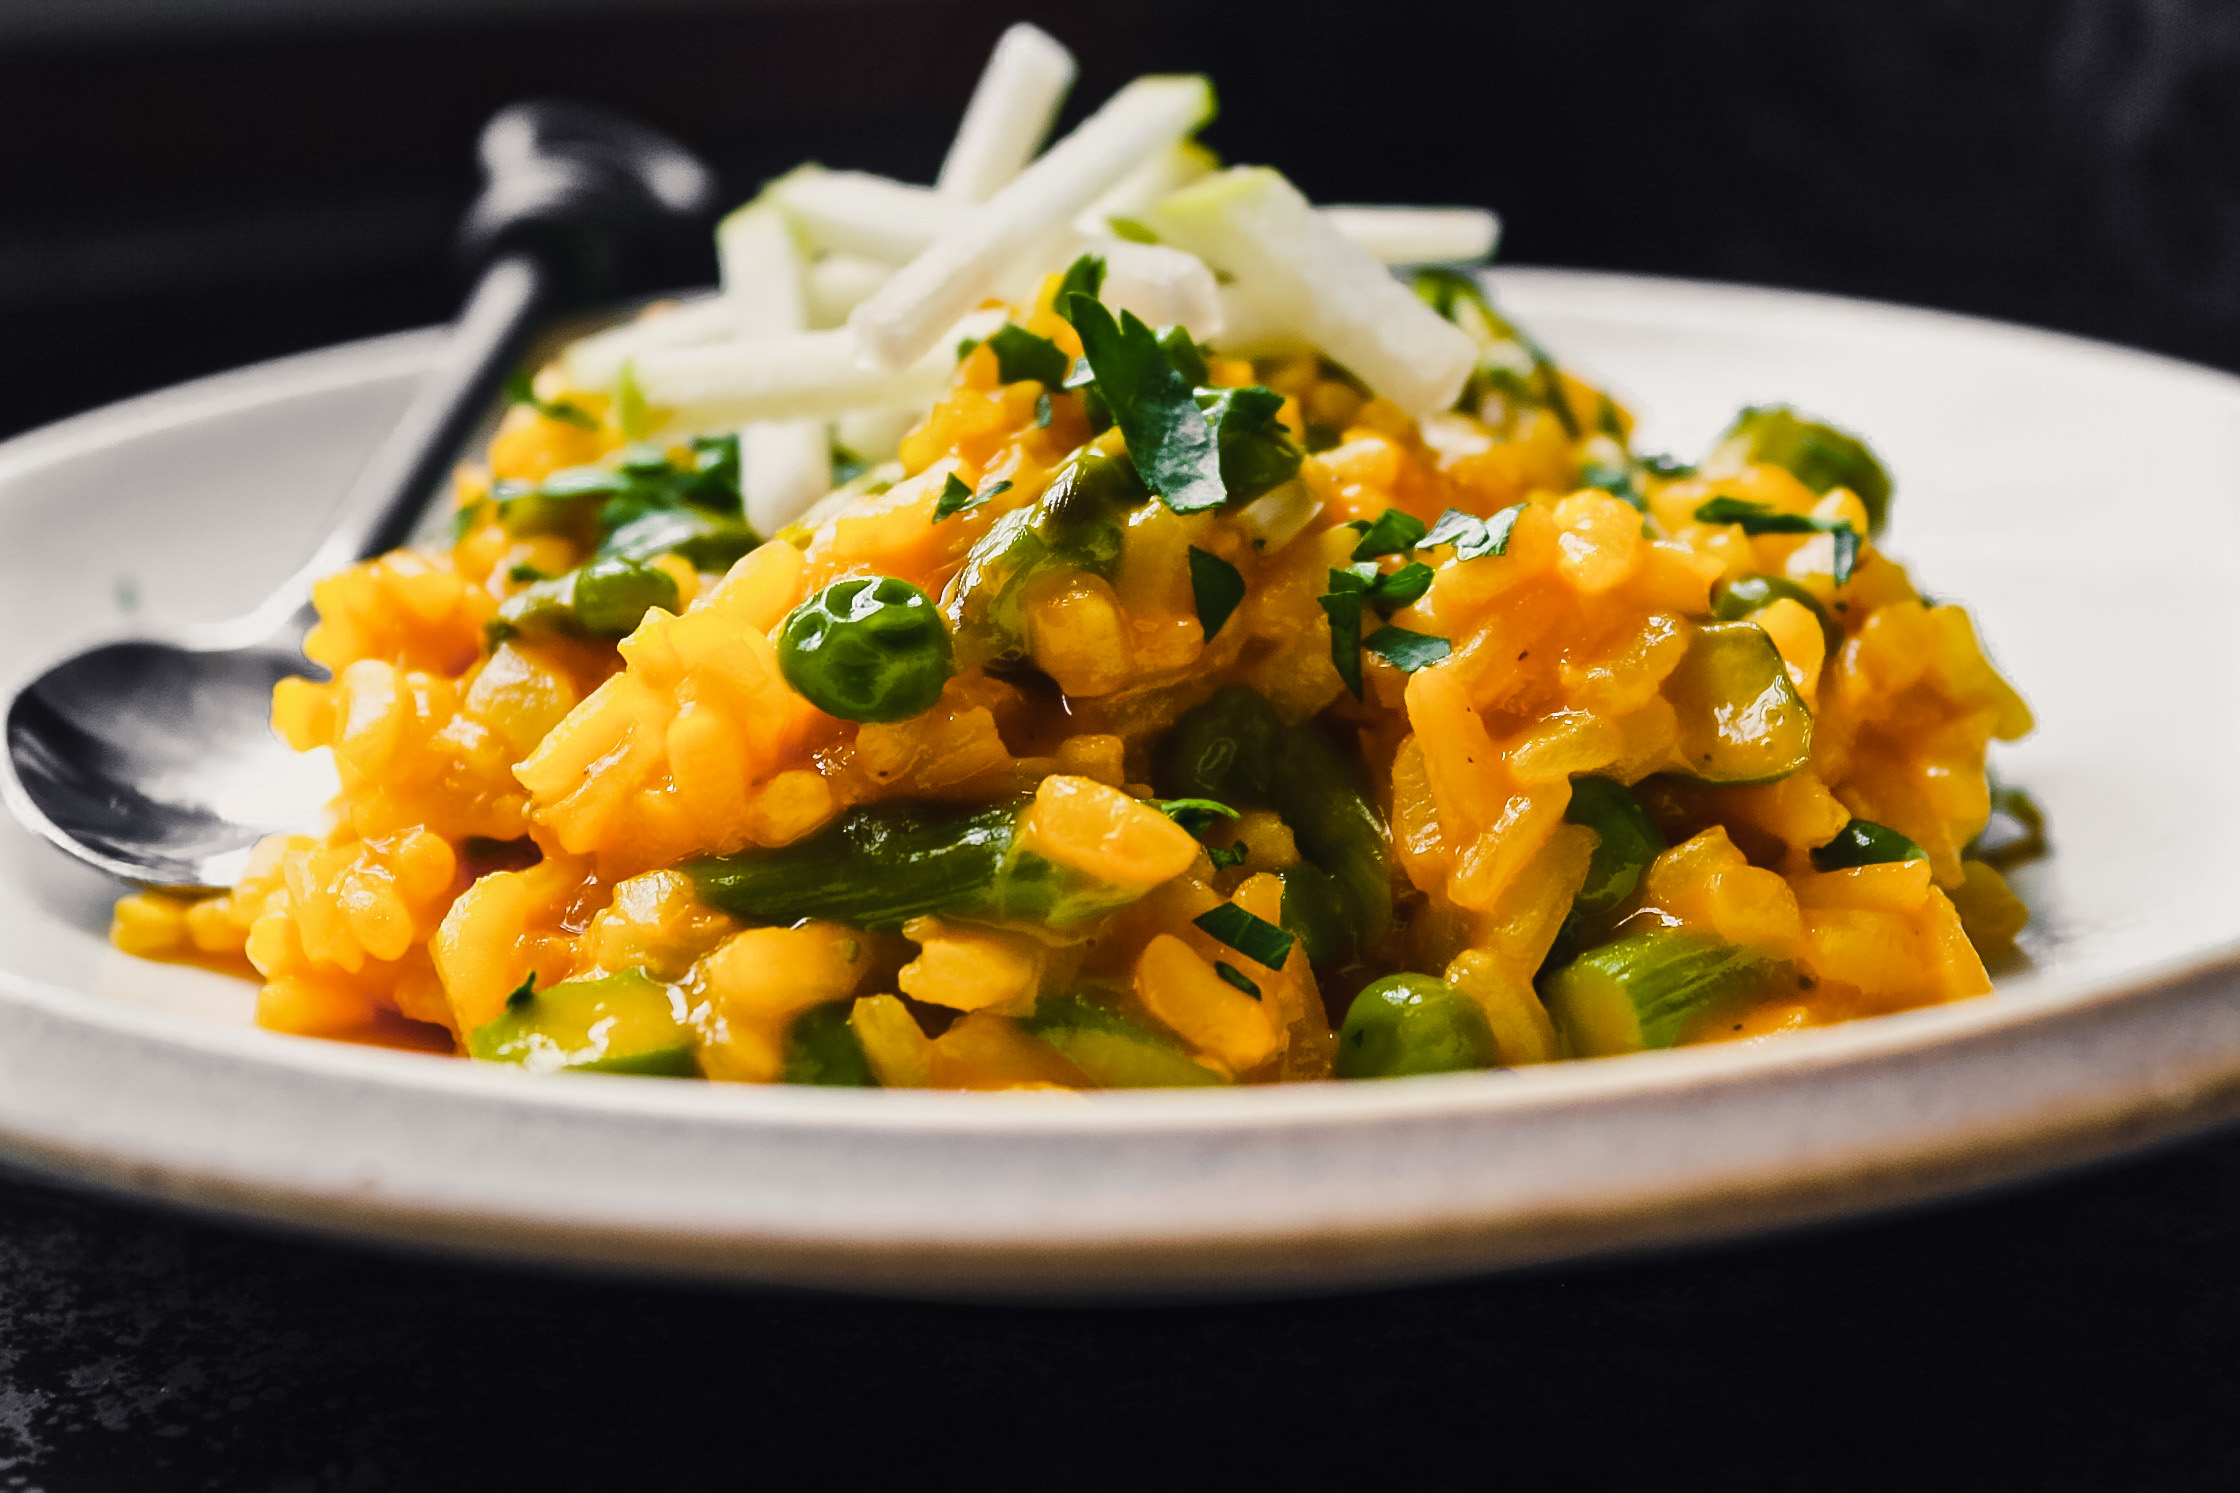 Close up photo of carrot risotto with peas and asparagus